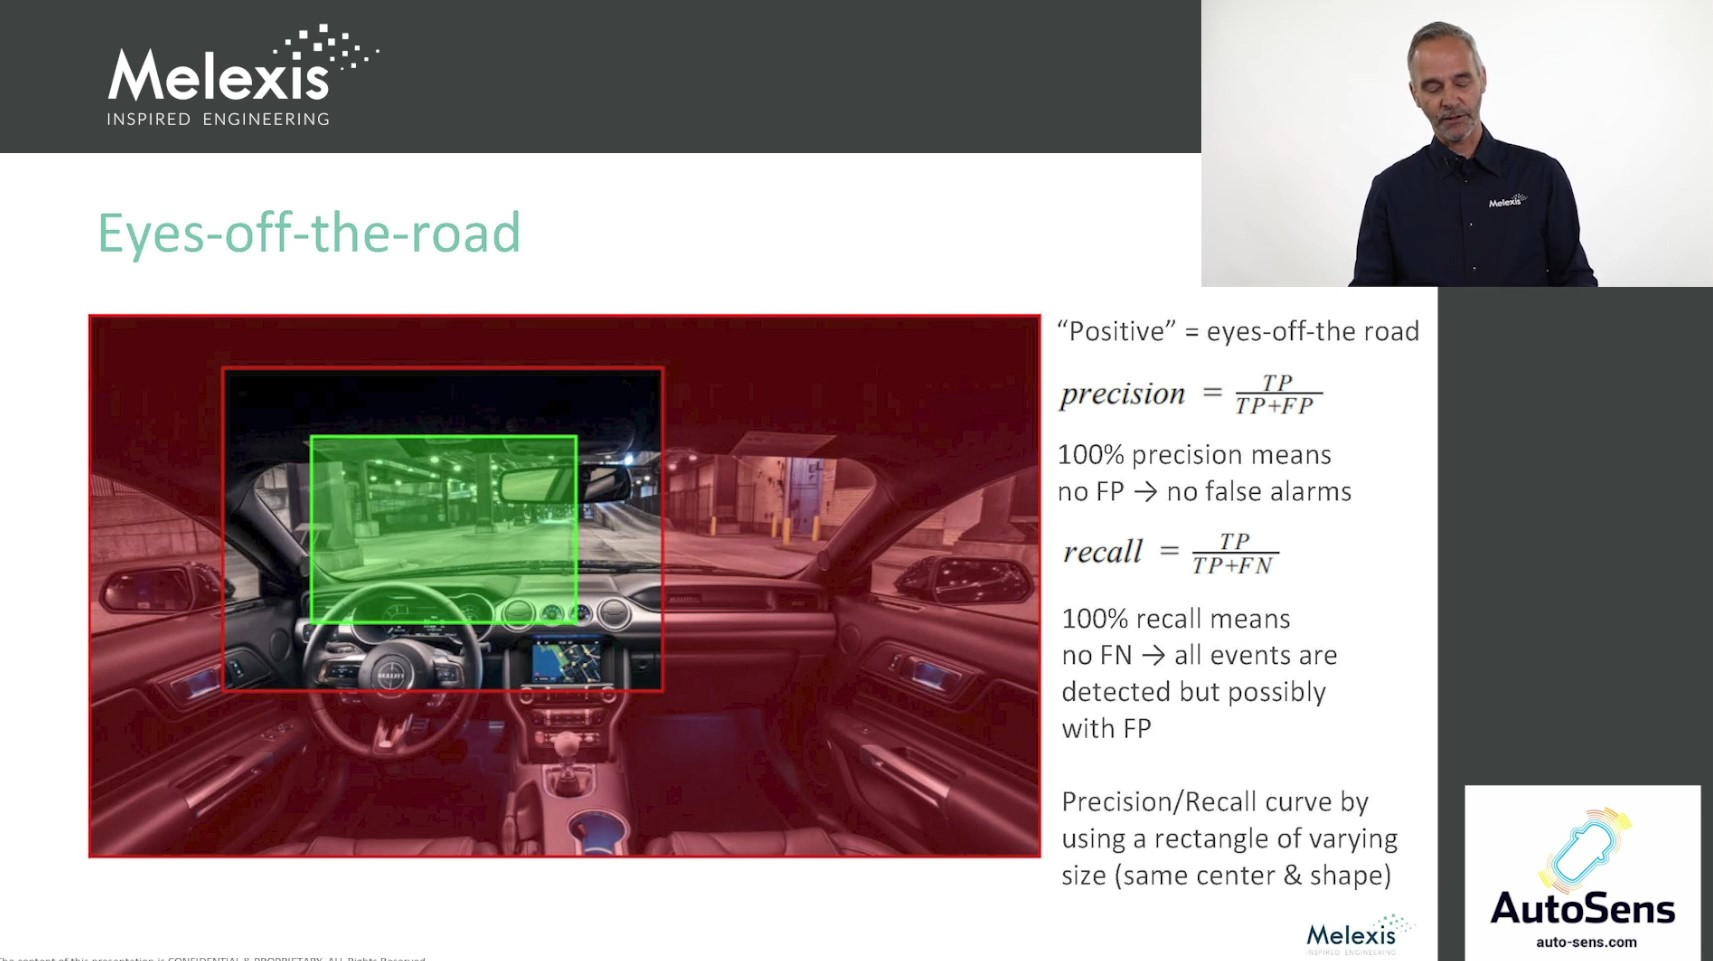 Interior Sensing (Driver and In-cabin Monitoring) with latest Time-of-Flight Technology